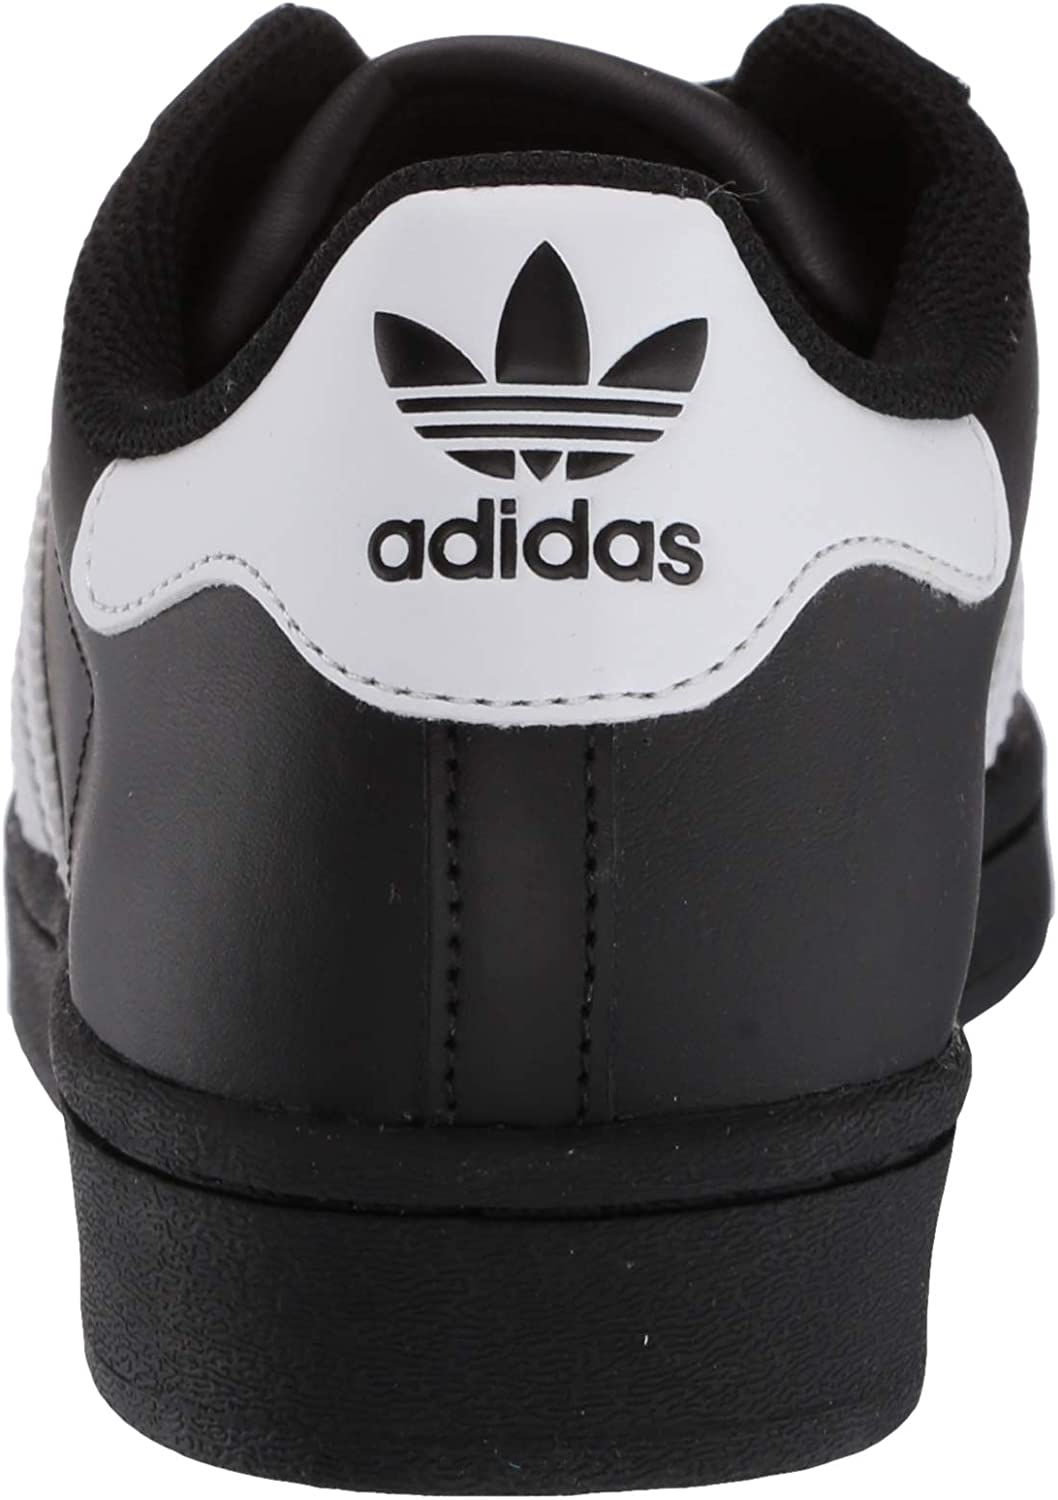 adidas Originals Mens Super-Star Sneaker